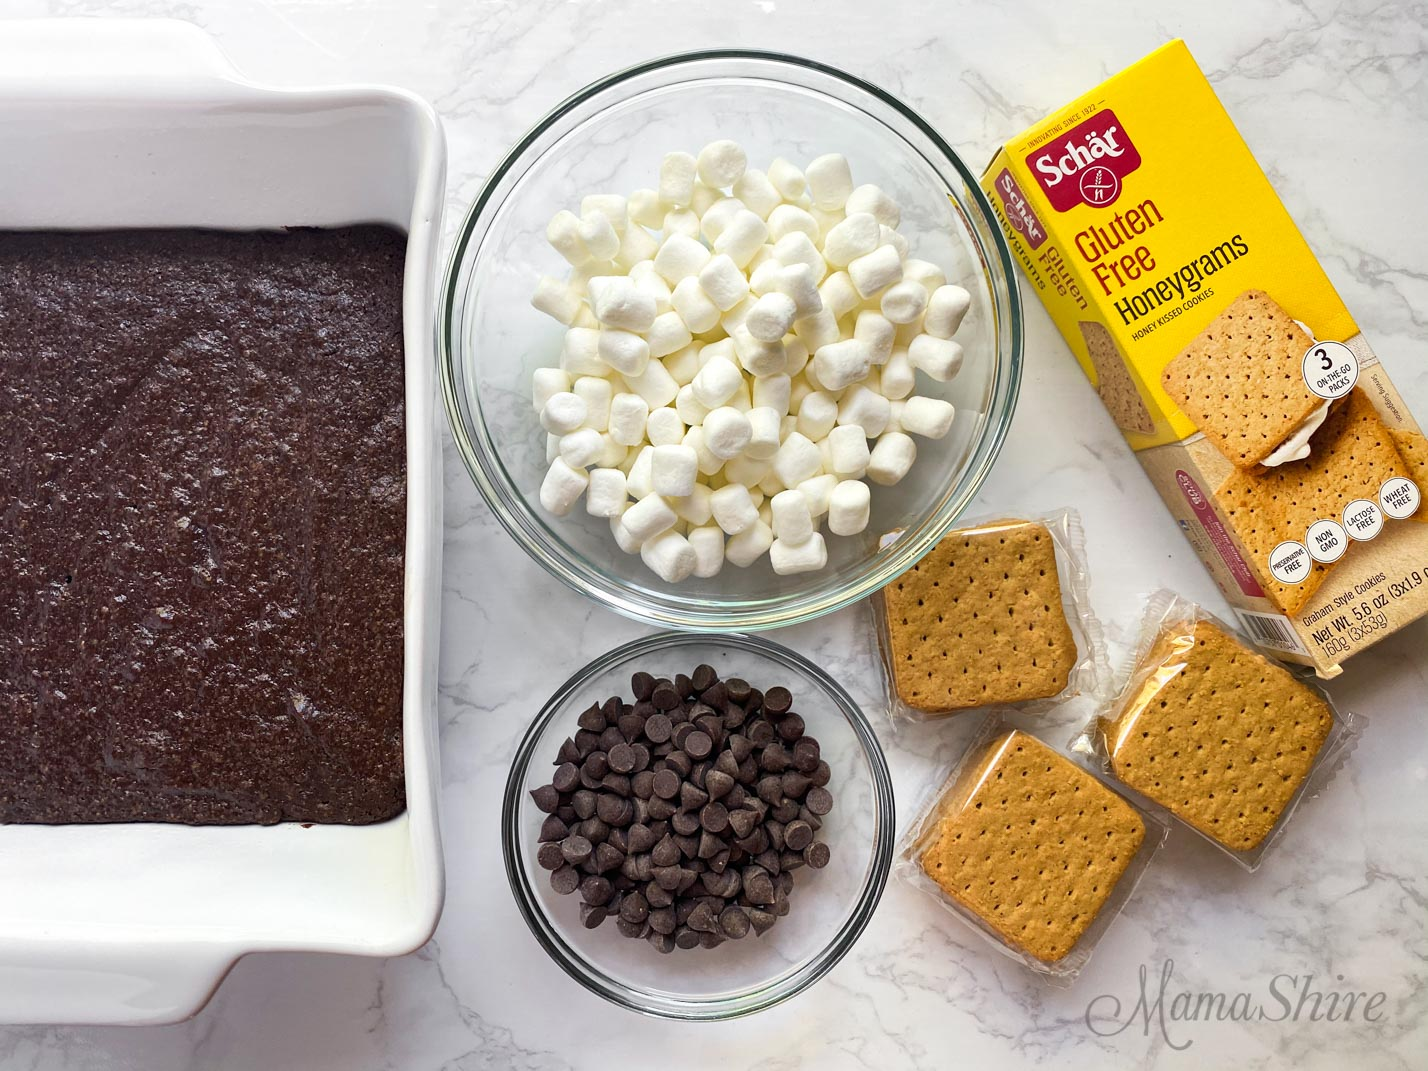 Ingredients for s'mores brownies - freshly baked gluten-free brownies, a bowl of marshmallows, gluten-free and dairy-free chocolate chips, and a pack of Schar's gluten-free graham crackers.